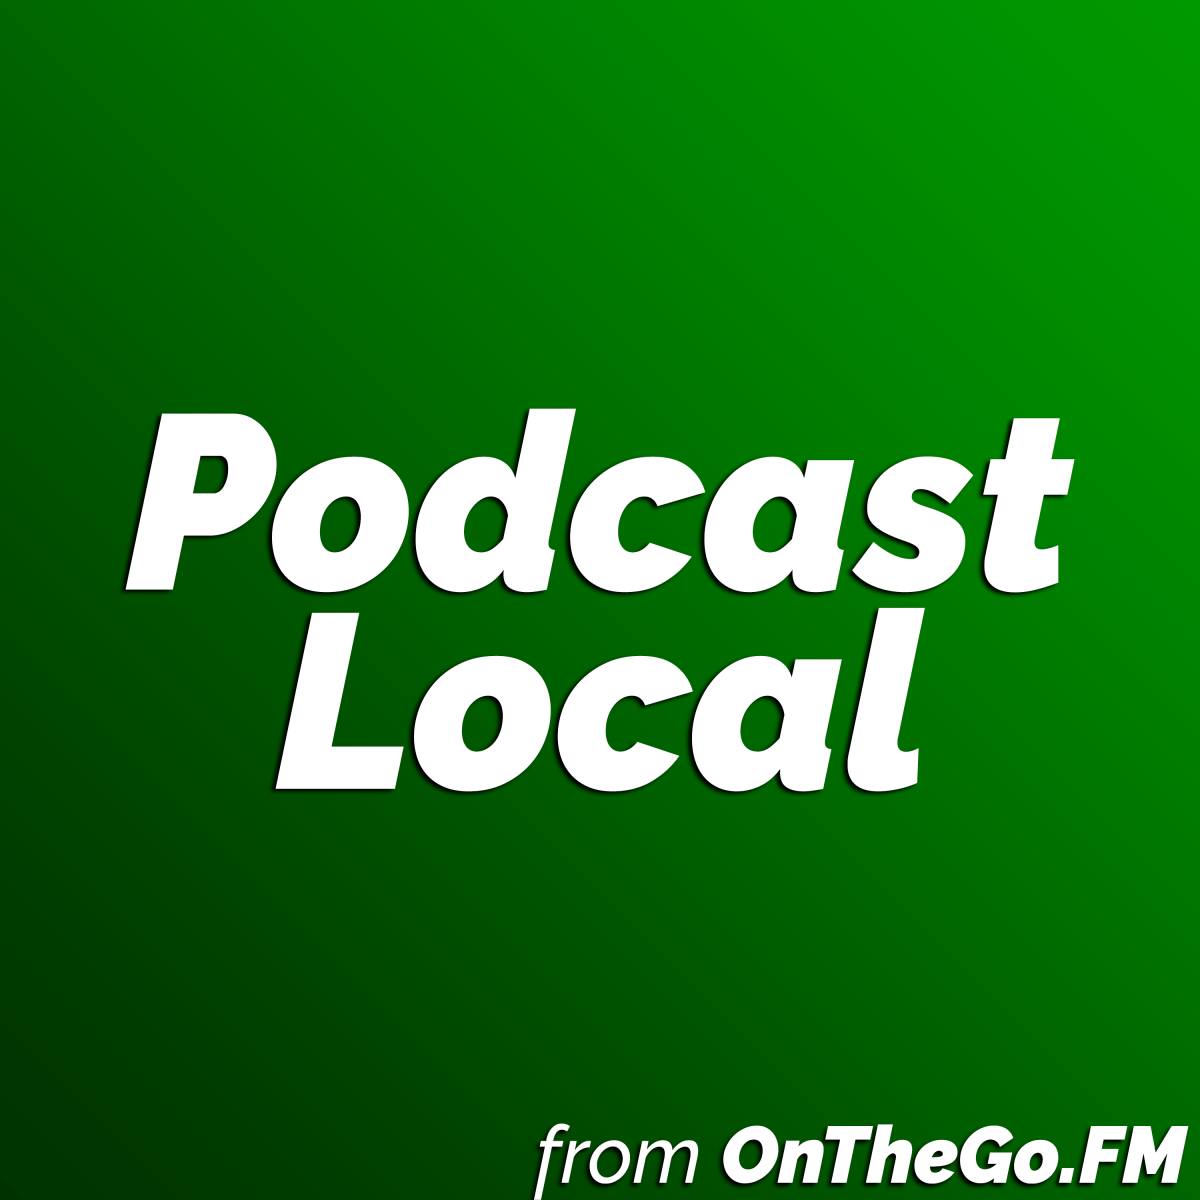 podcast-local-onthego-fm-2018-s4-3000